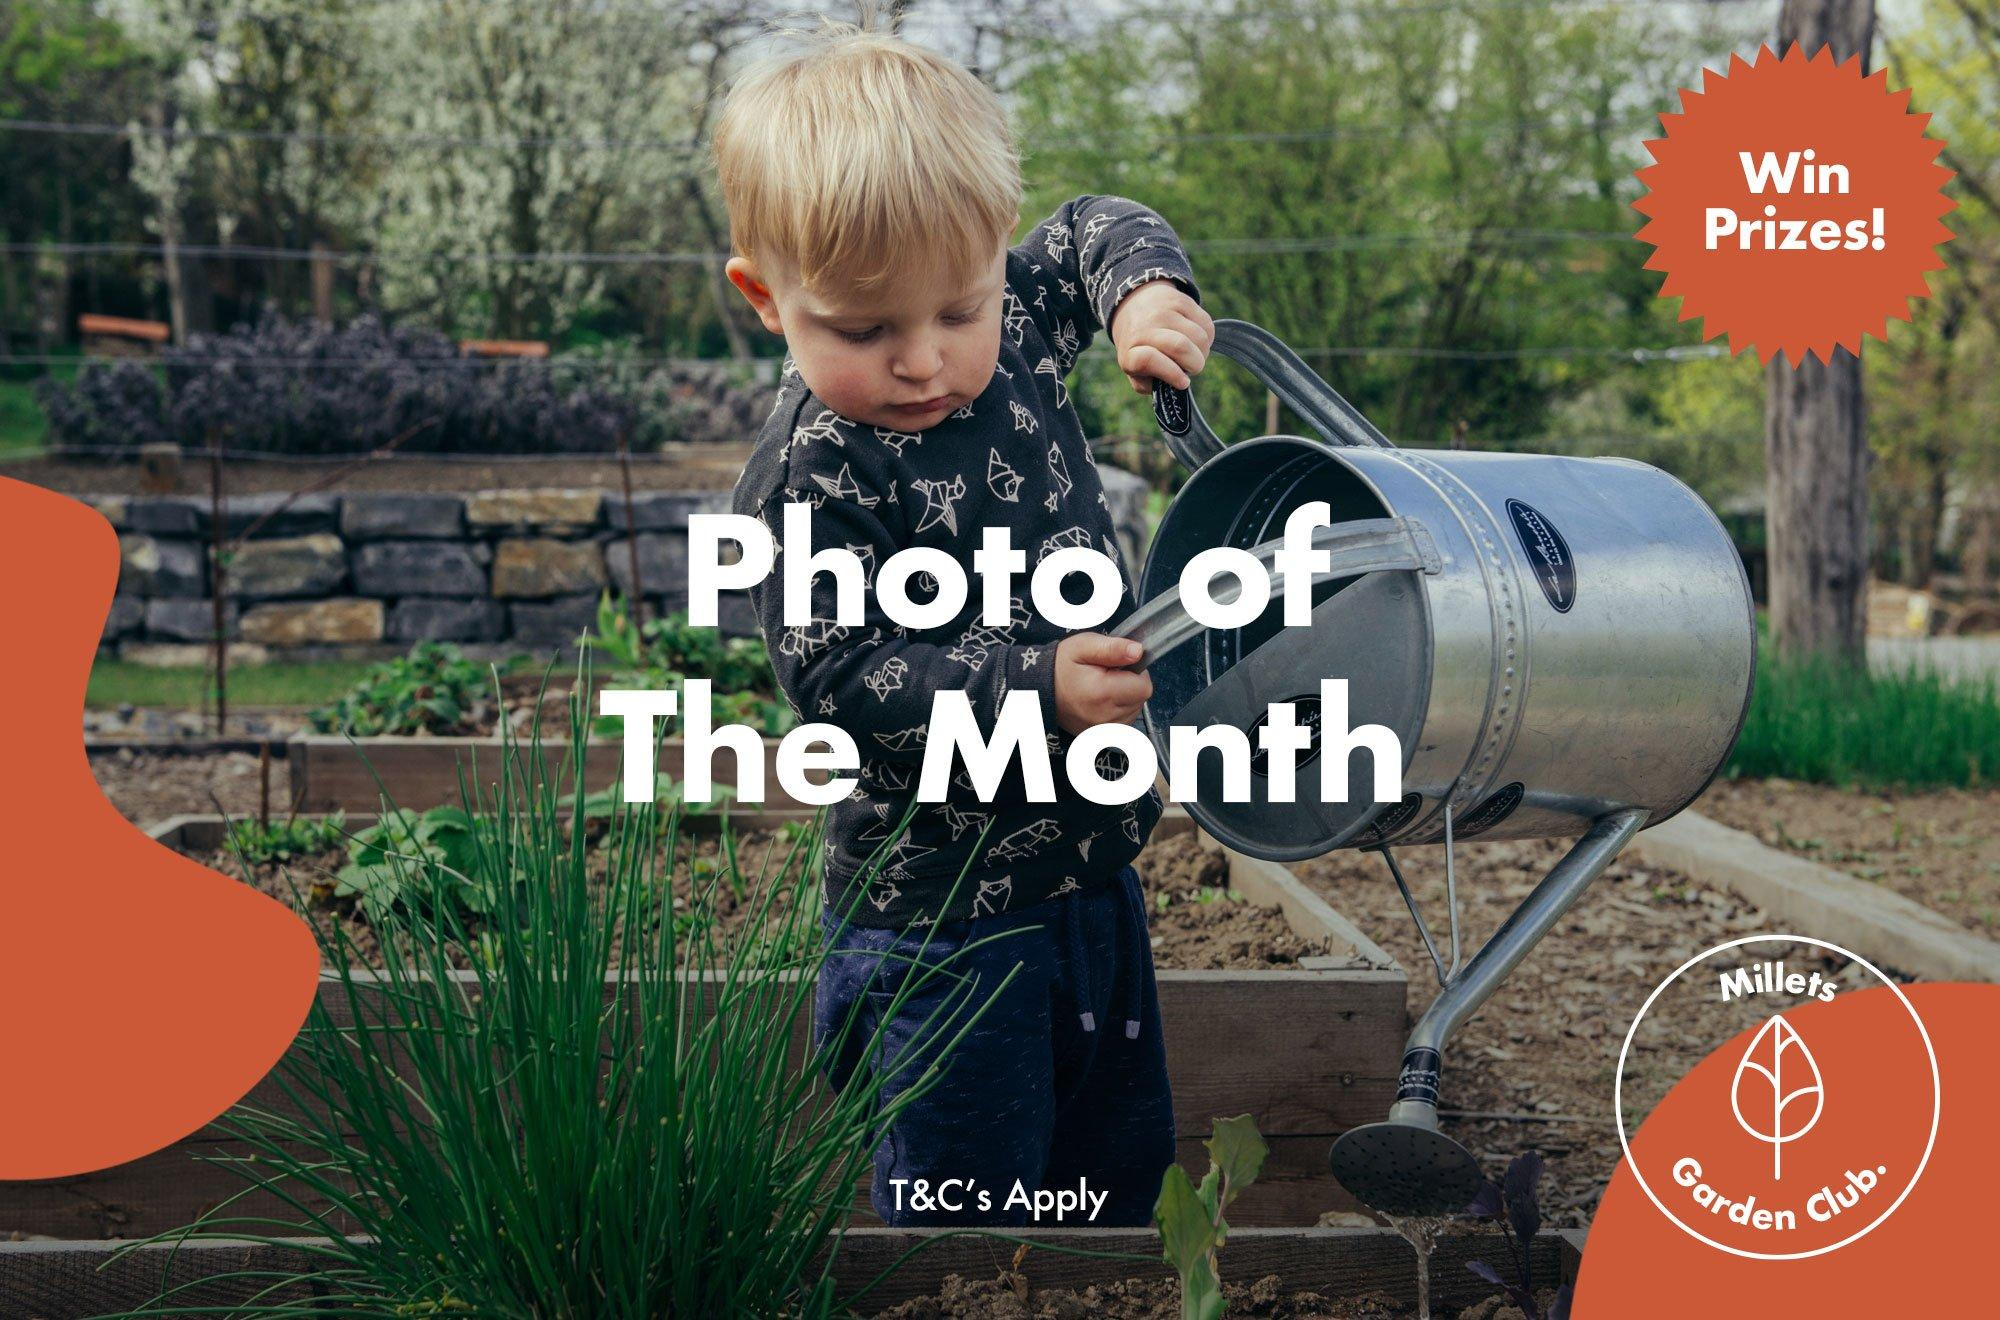 A picture of the Millets Garden Club Photo of the Month